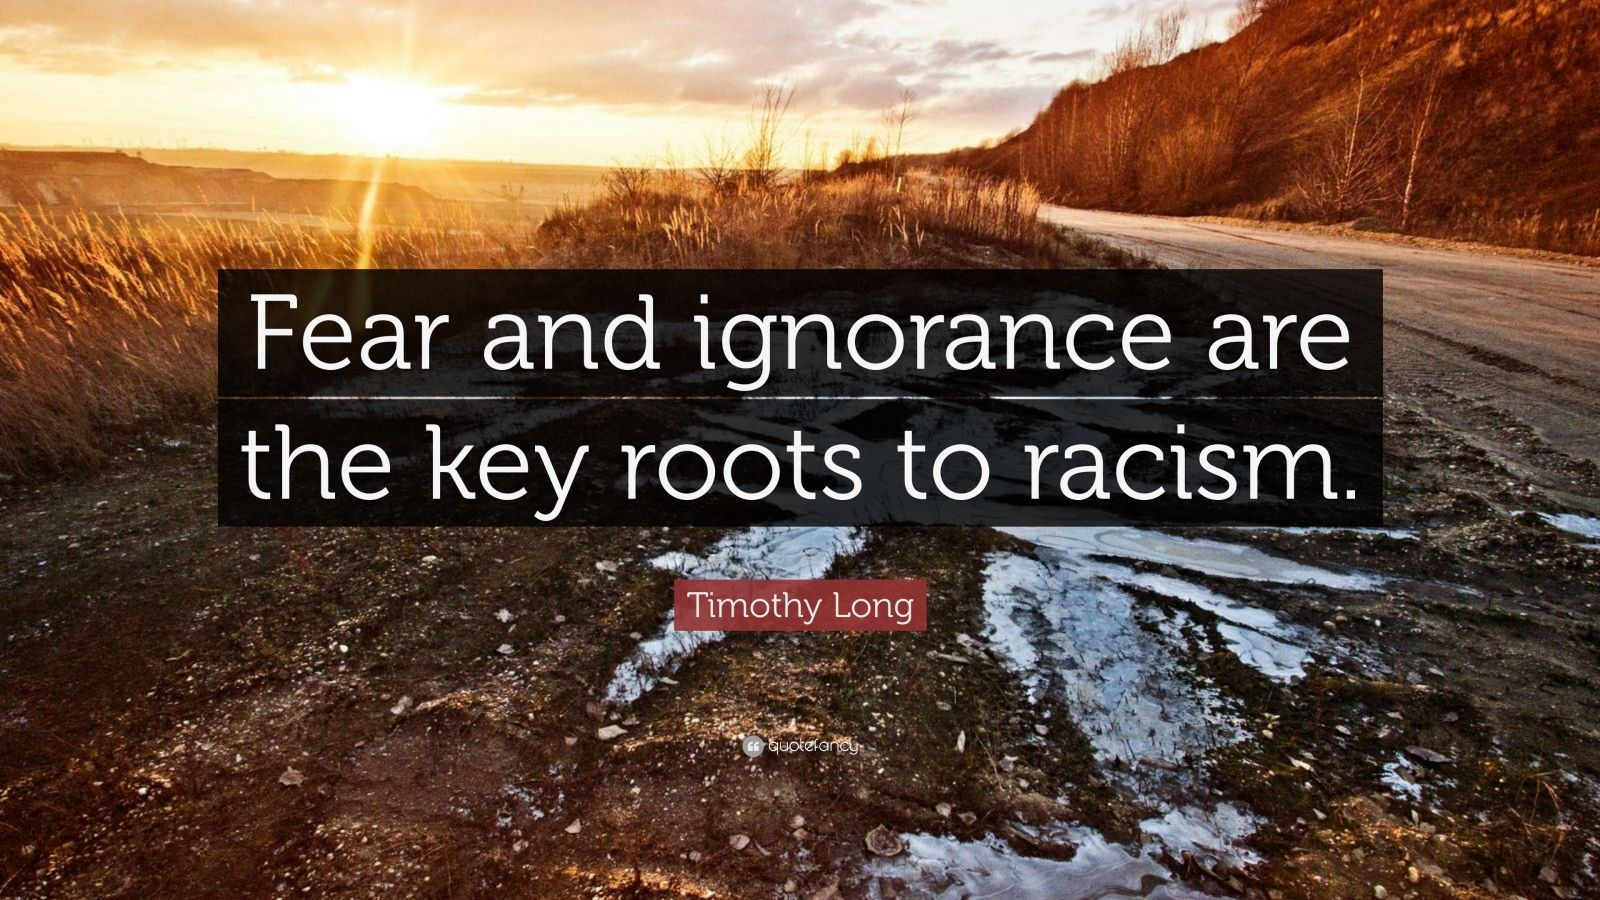 racism is ignorance and fear essay Ignorance + fear = racism essays: over 180,000 ignorance + fear = racism essays, ignorance + fear = racism term papers, ignorance + fear = racism research paper, book reports 184 990 essays, term and research papers available for unlimited access.